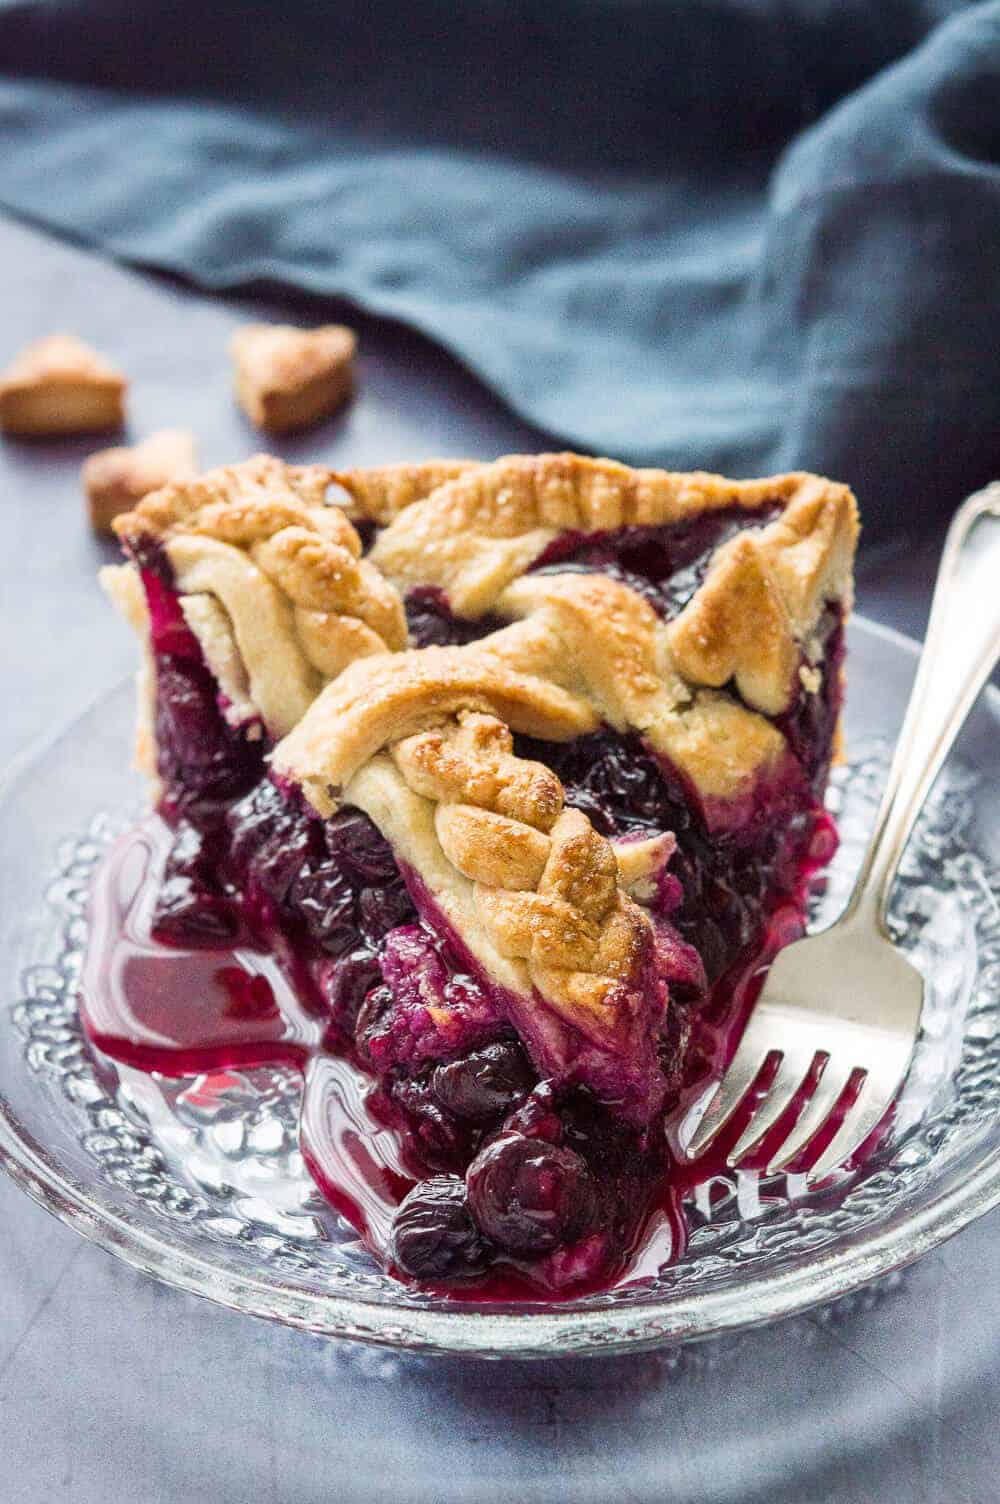 Blueberry pie with coconut oil crust - an incredible vegan, egg and dairy free lattice topped blueberry pie made with coconut oil pastry.